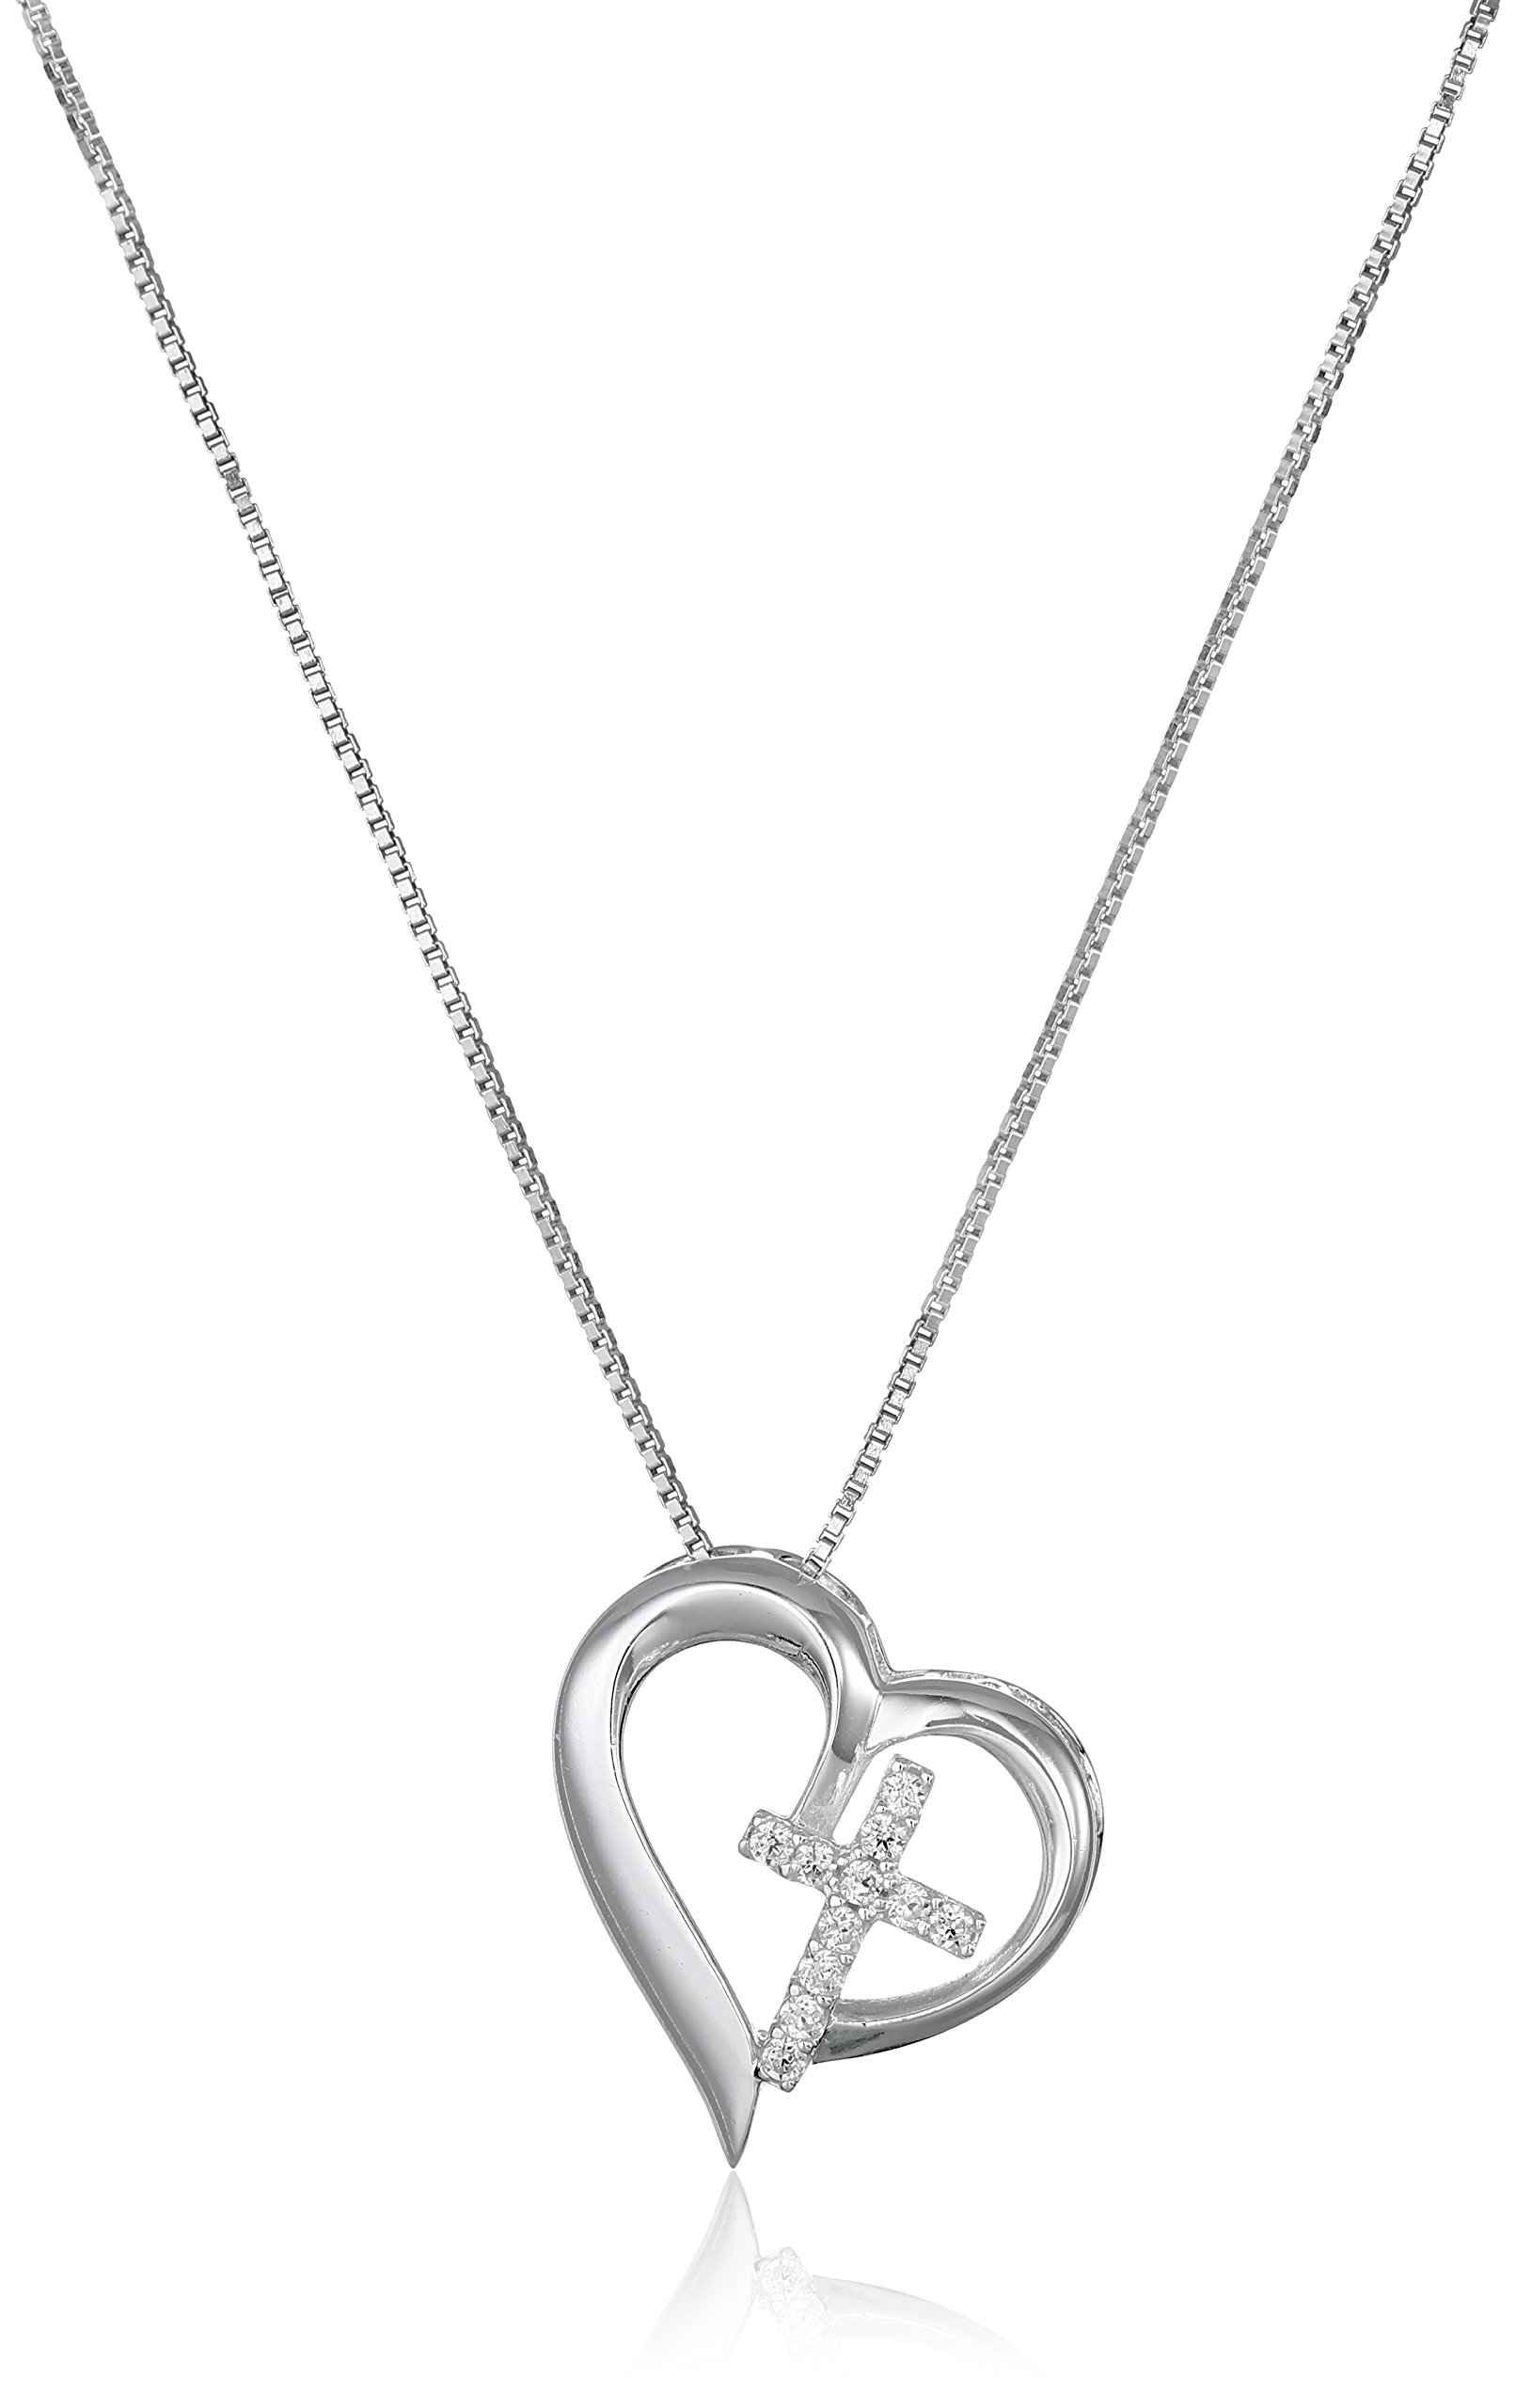 Sterling Silver Open Heart with Cubic Zirconia Cross ''Faith Hope Love'' Pendant Necklace, 18''